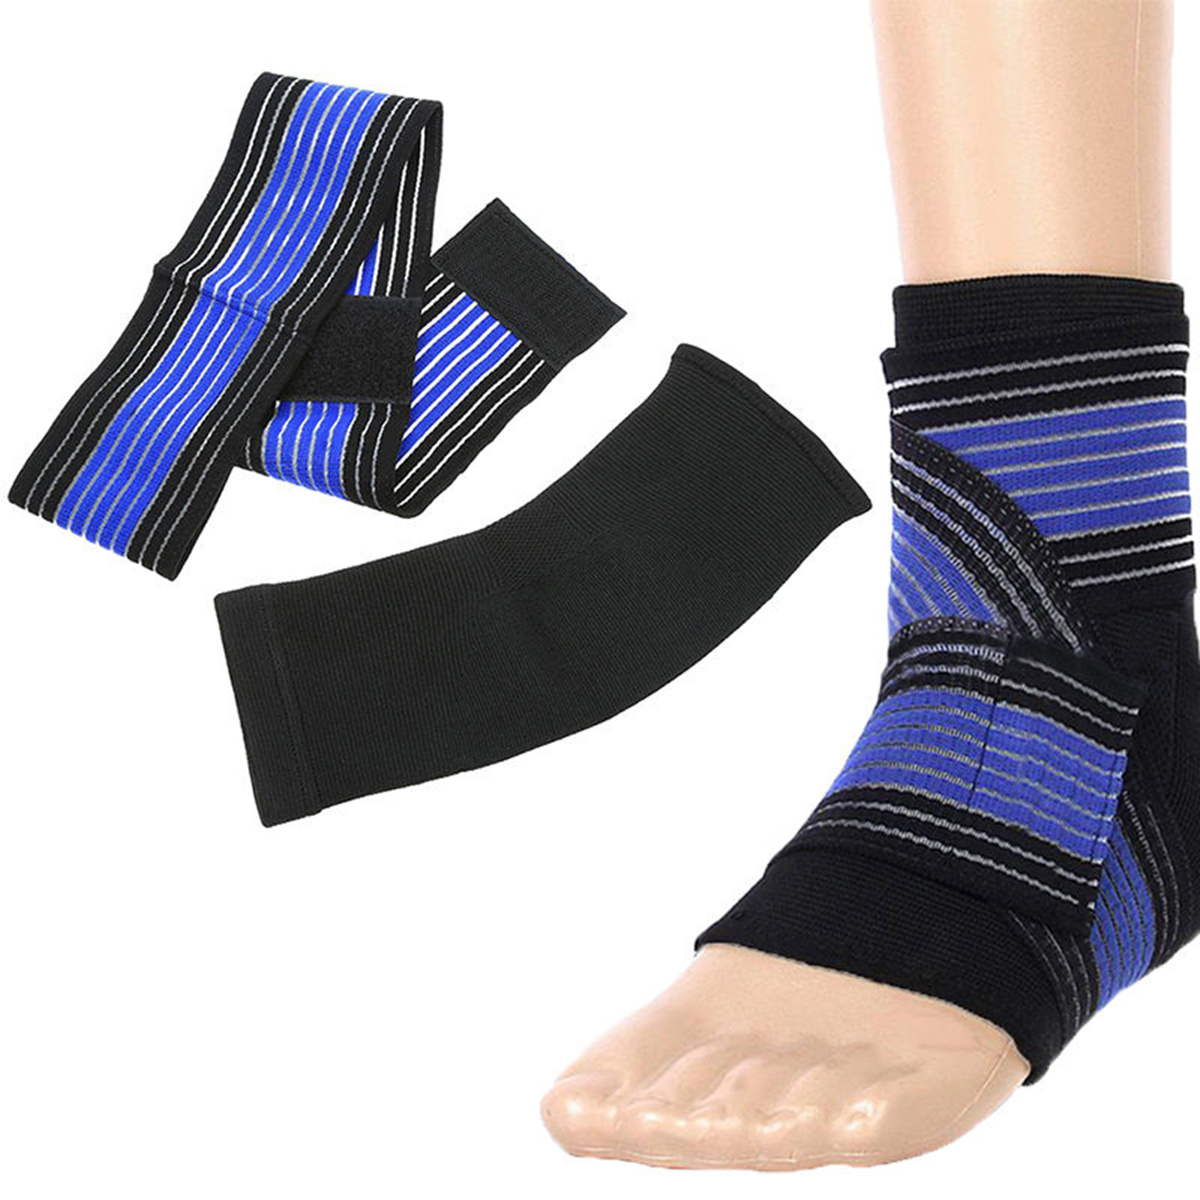 OUTERDO Ankle Foot Elastic Compression Wrap Sleeve Bandage Brace Support Protection Bule,Blue color